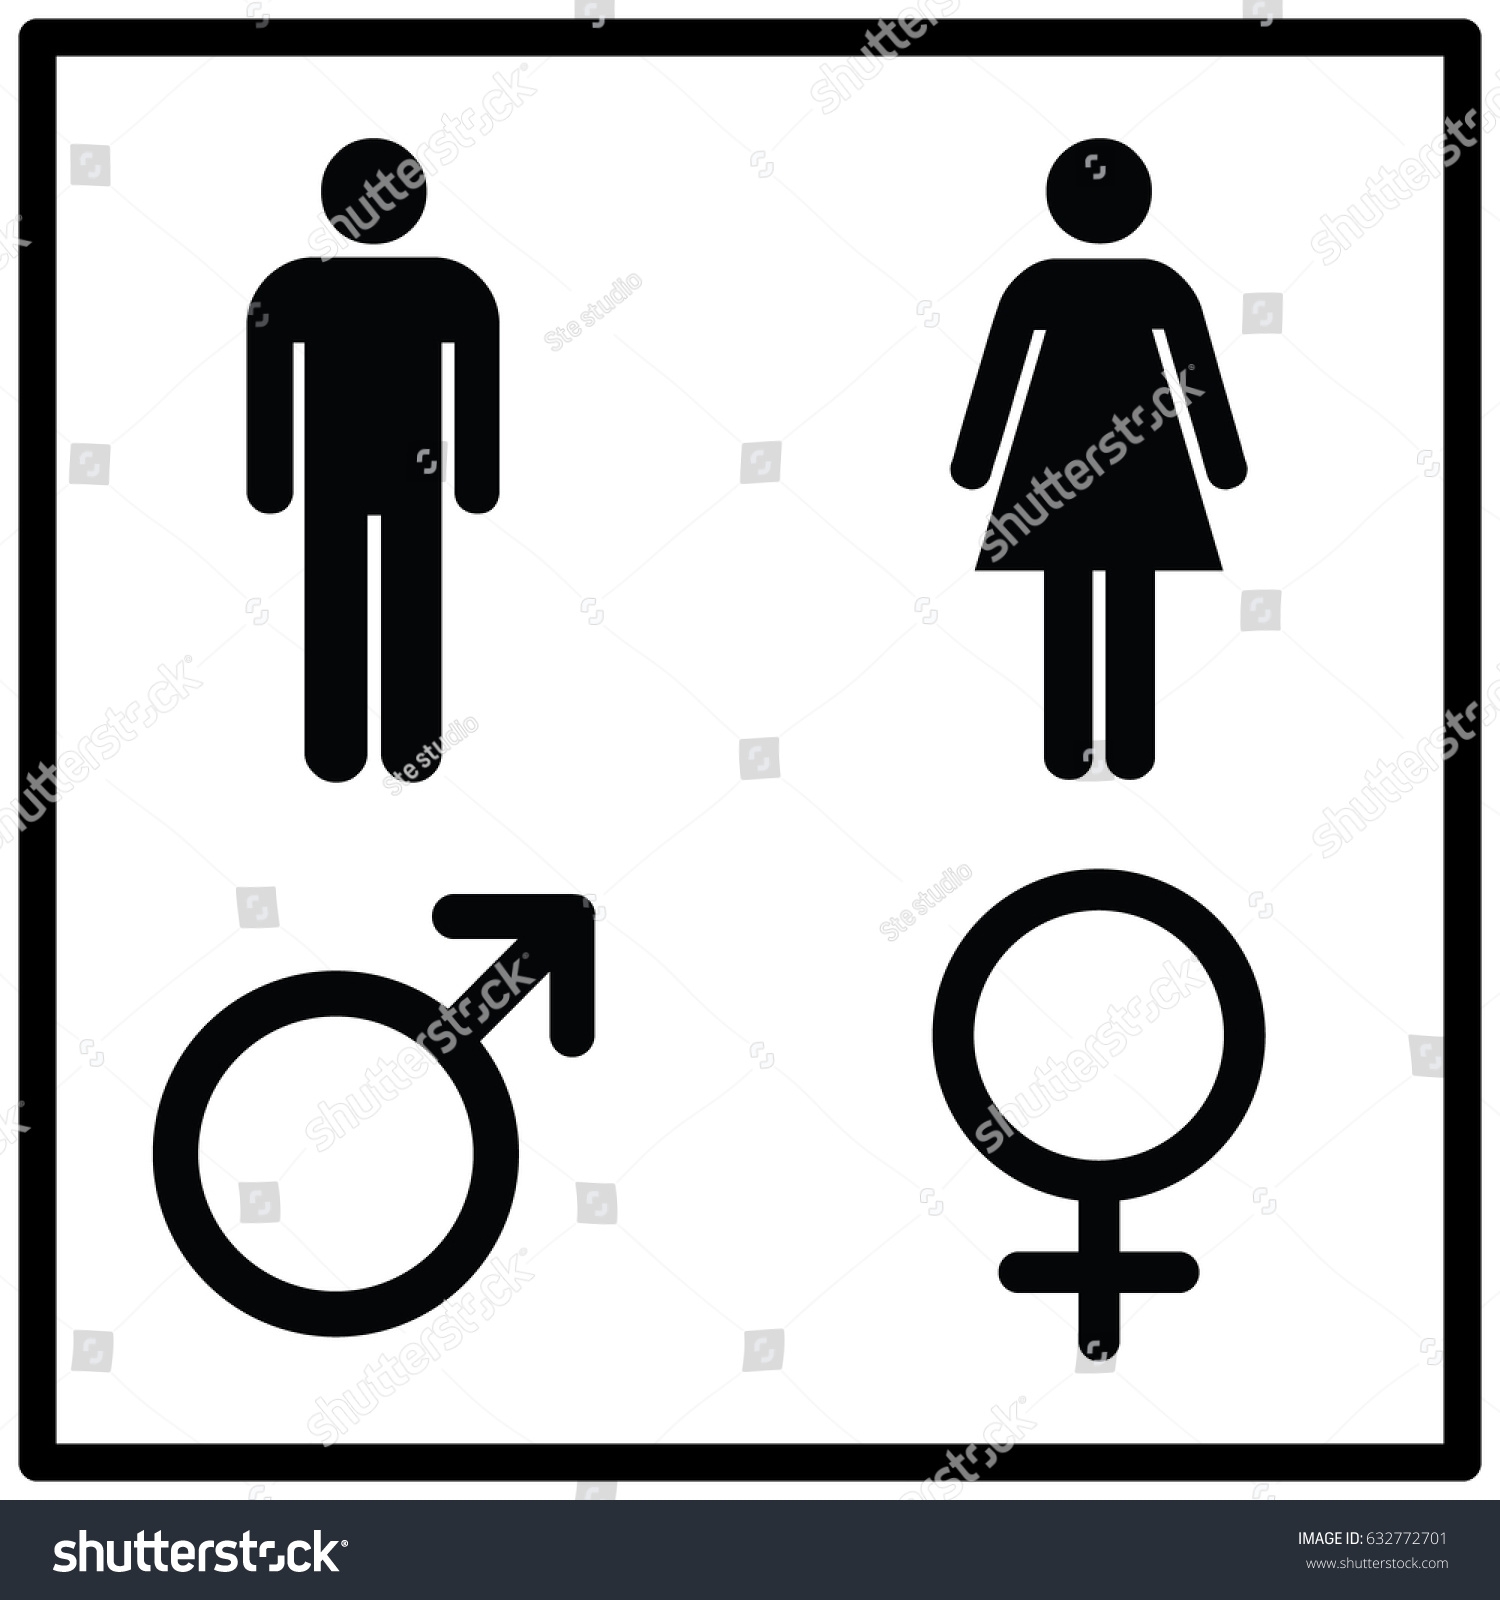 Restroom sign male female stock vector 632772701 for Male female bathroom sign images